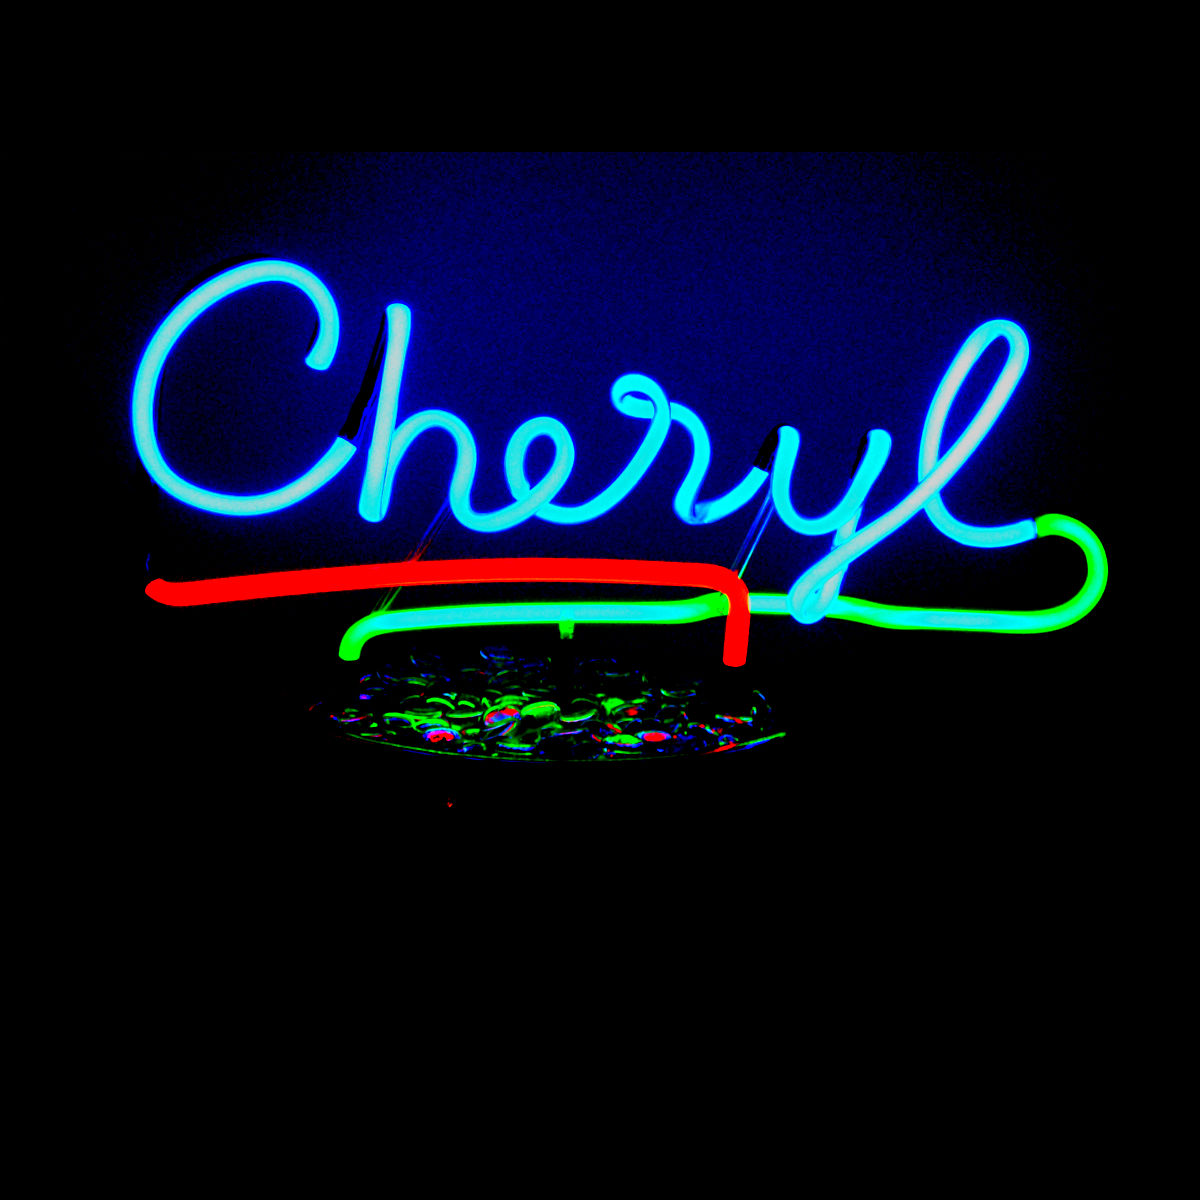 Your name in neon lights